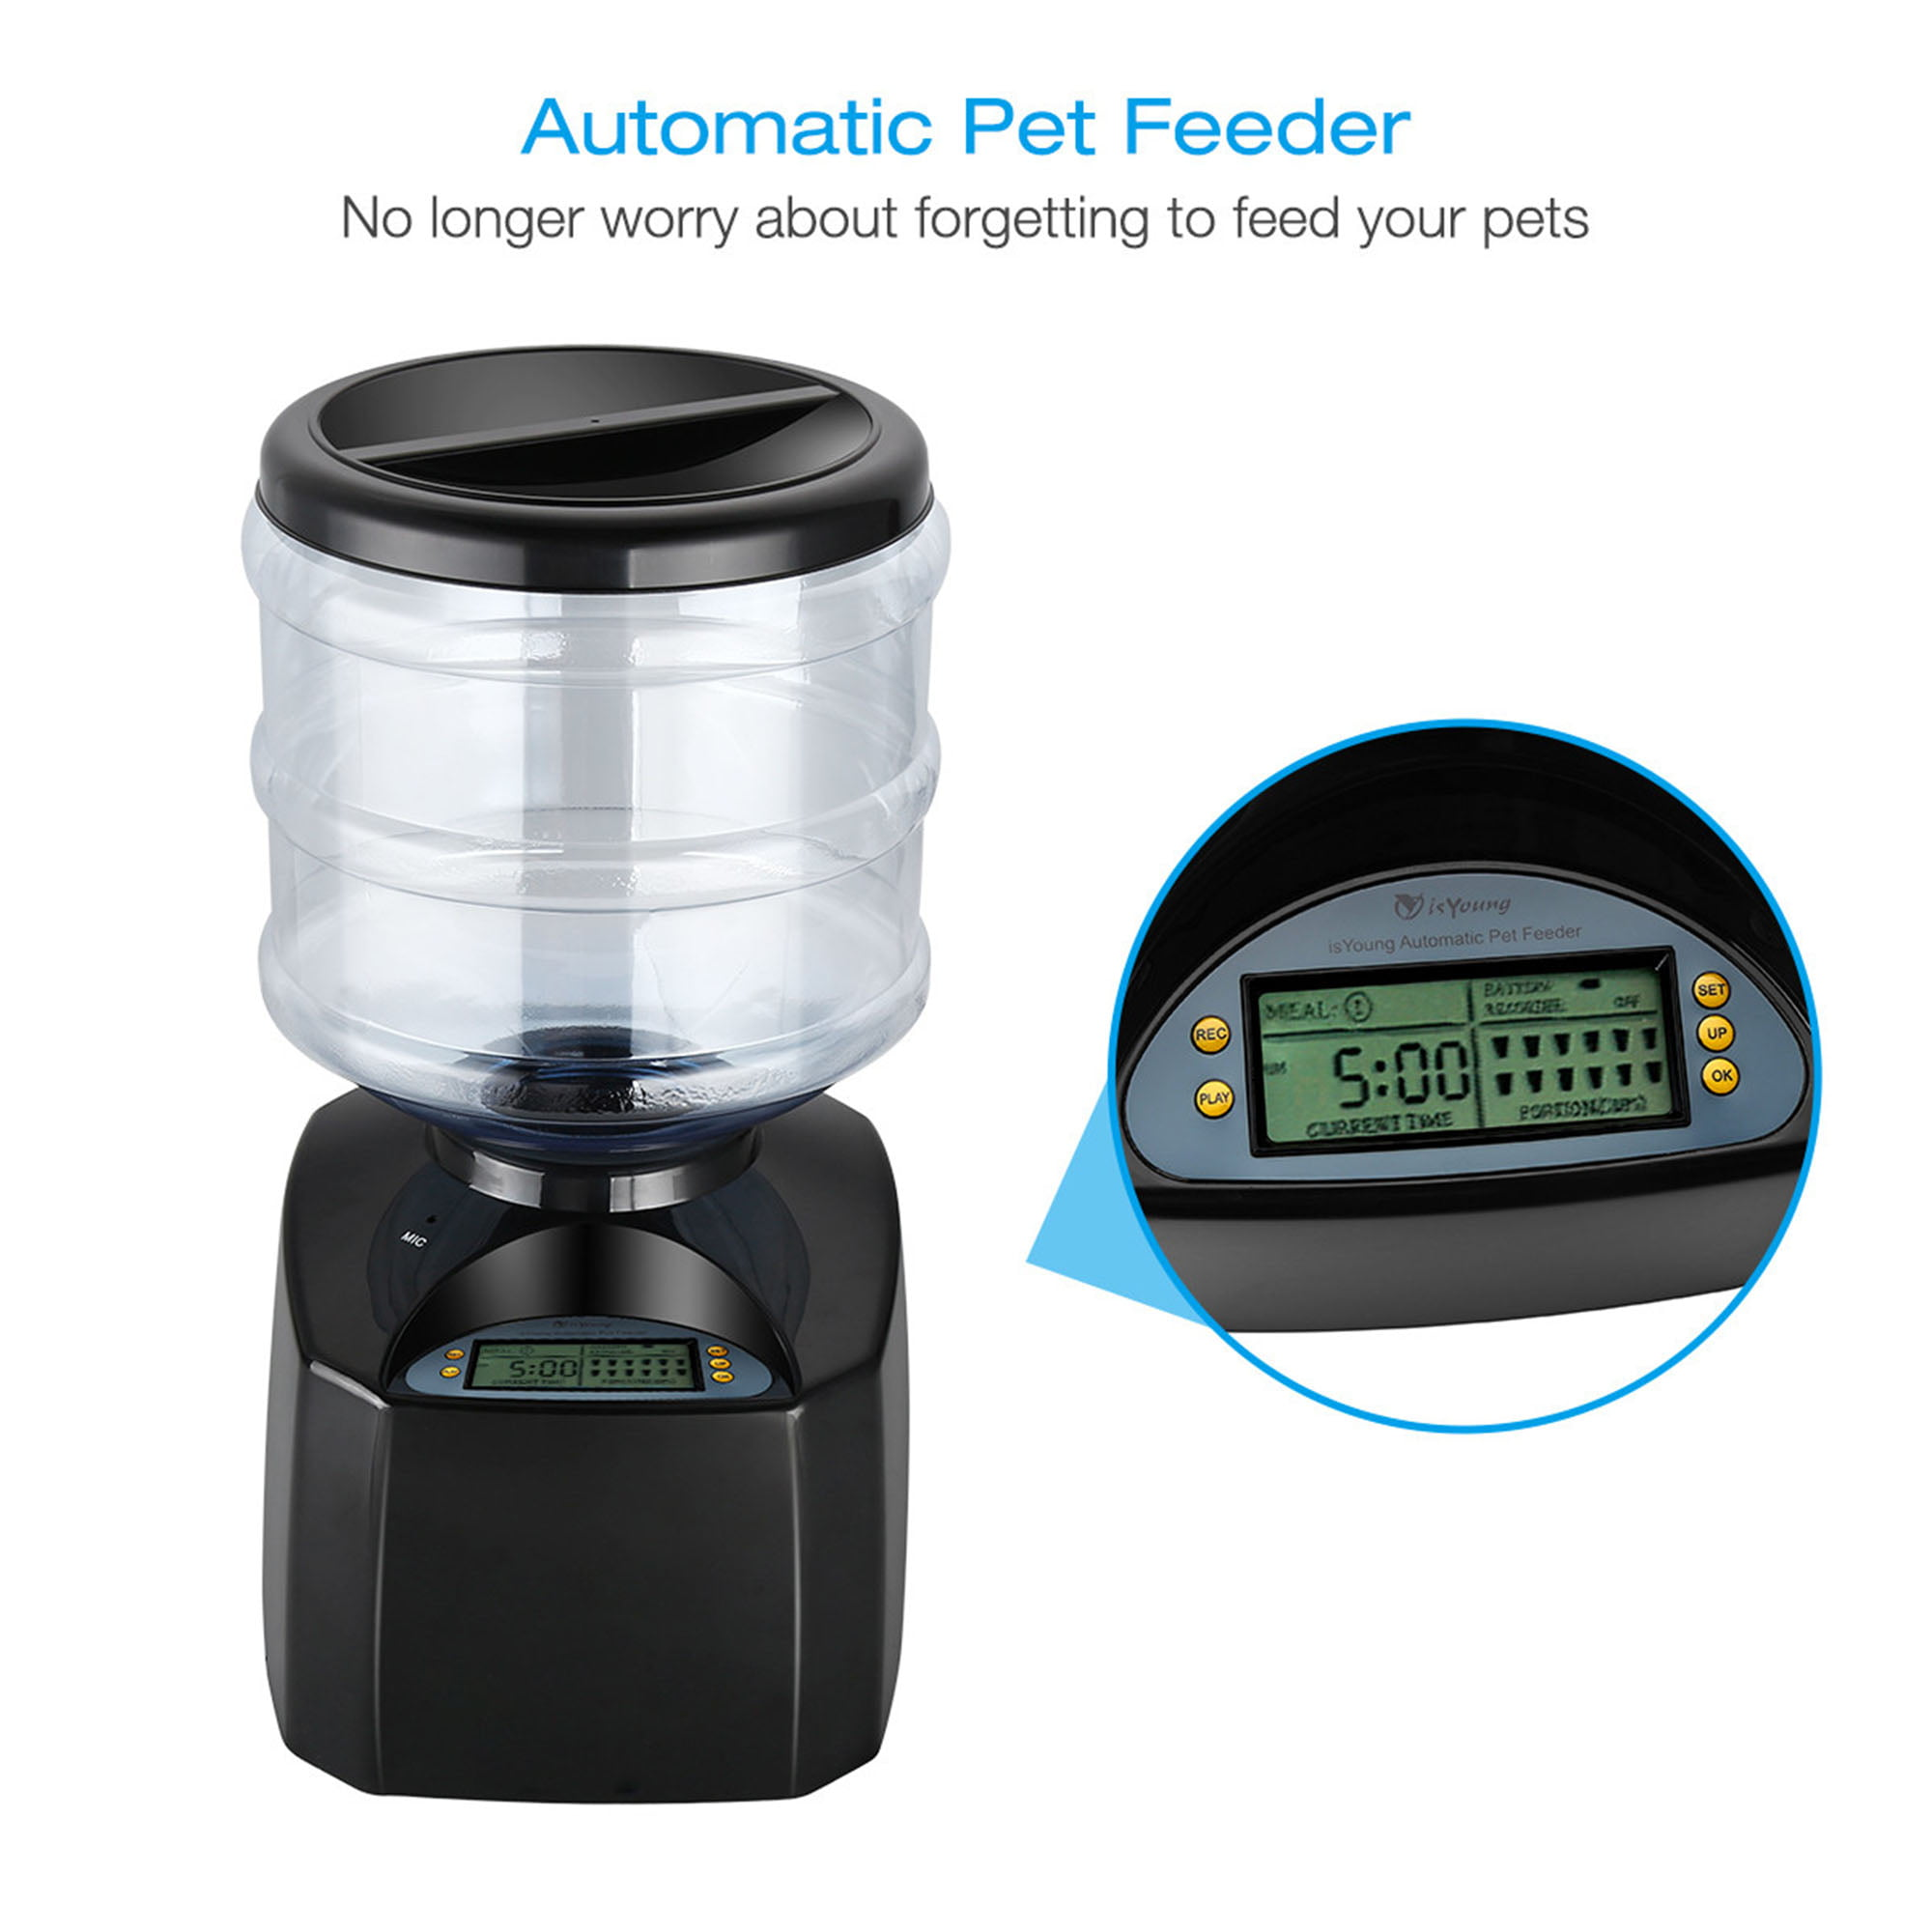 meal best pcr automatic in dog product feeder image petsafe reviews customer pet rated feeders helpful